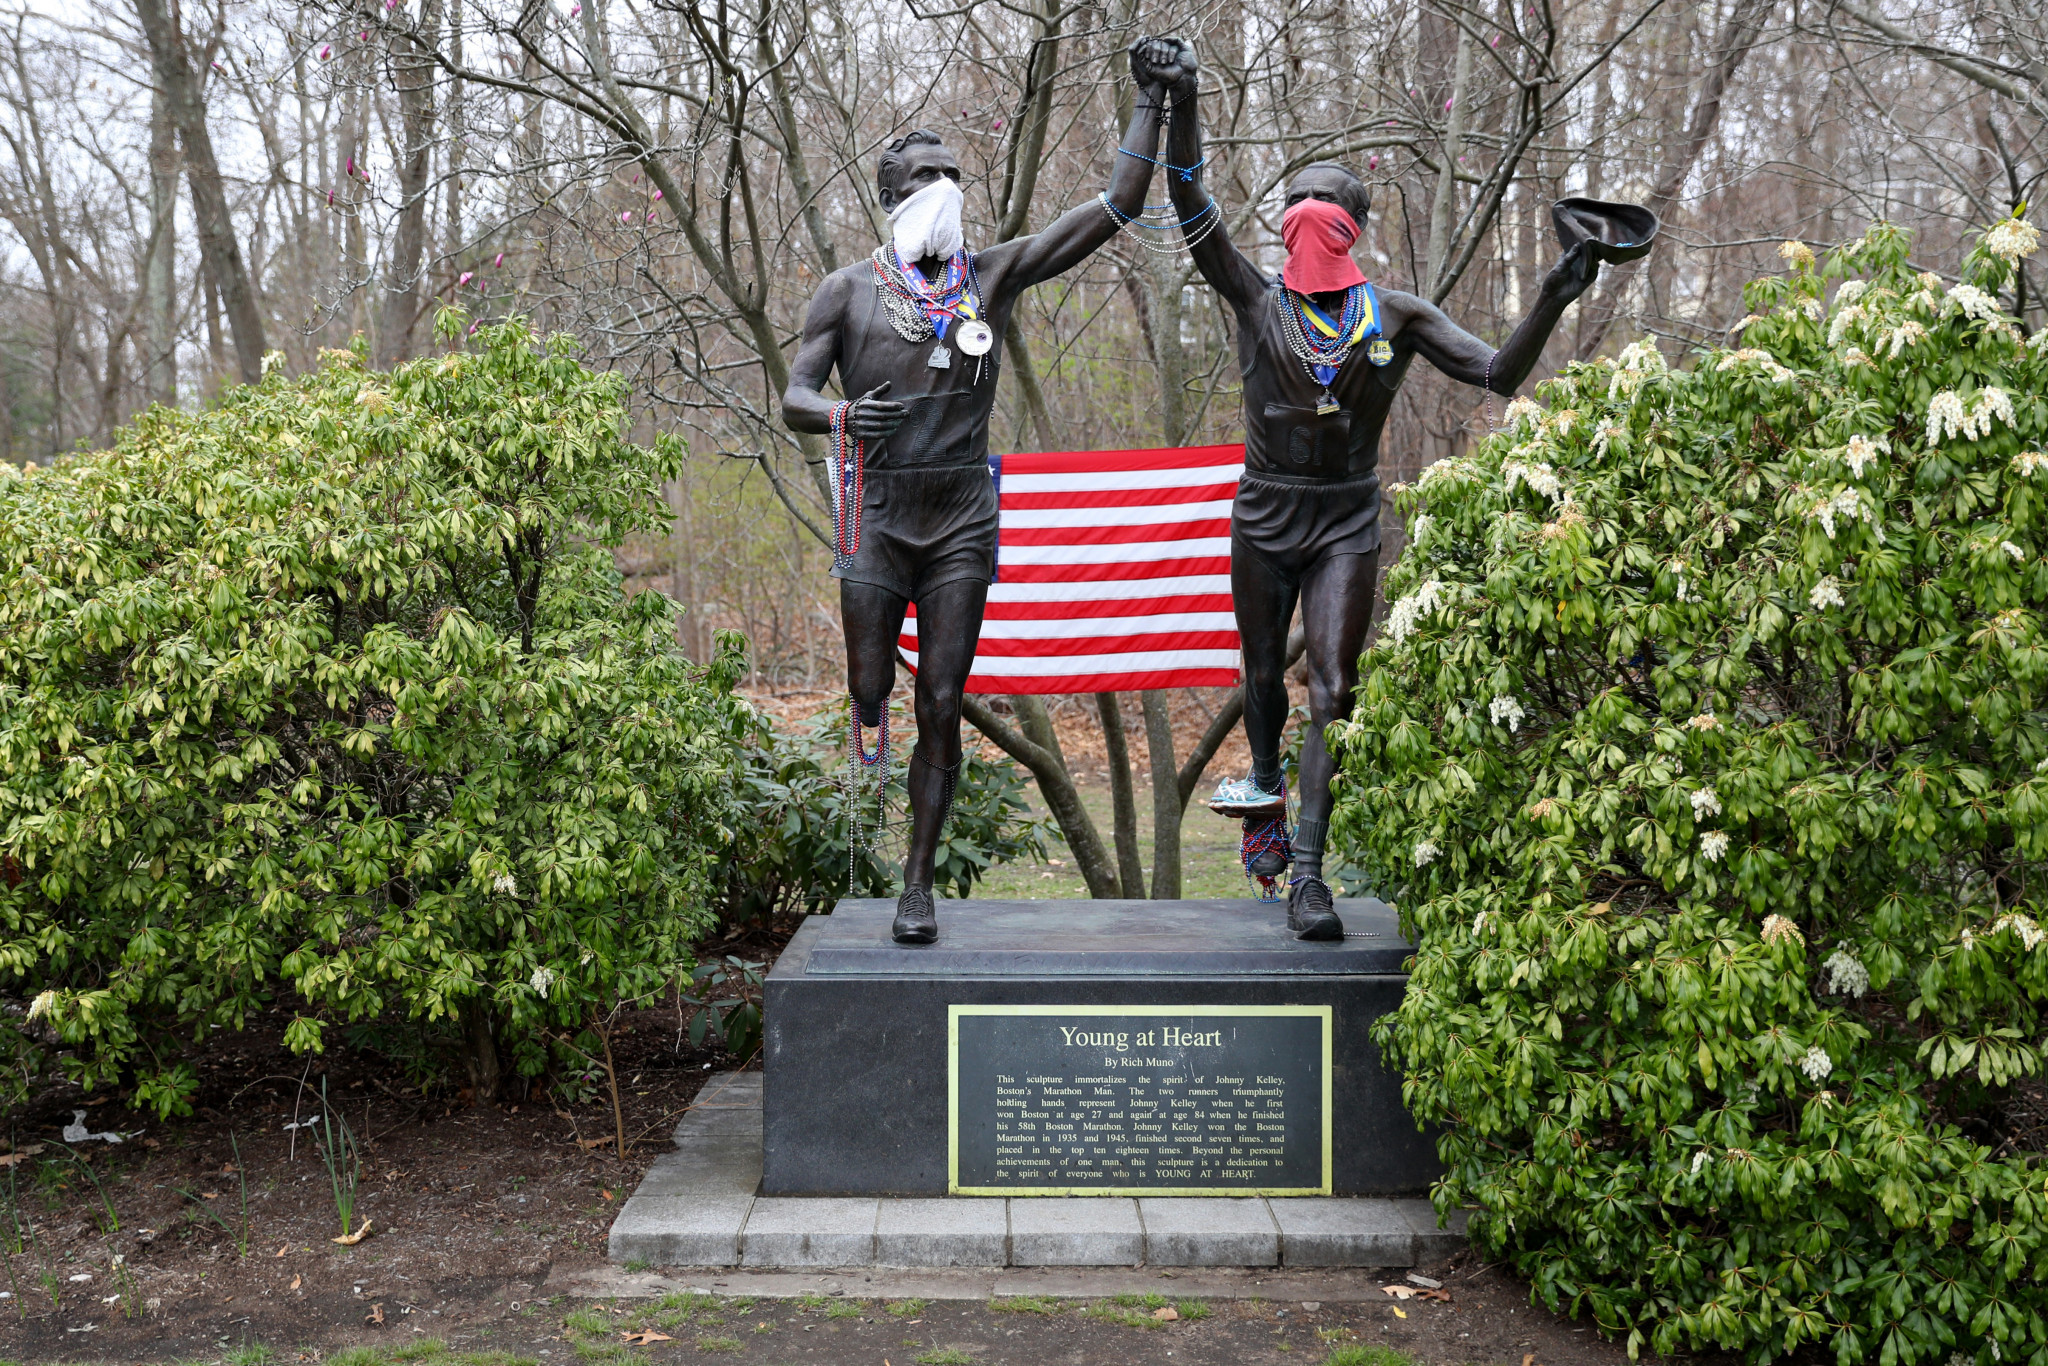 Face coverings were added to the statue of Johnny Kelley on the Heartbreak Hill section of the Boston Marathon course this year ©Getty Images